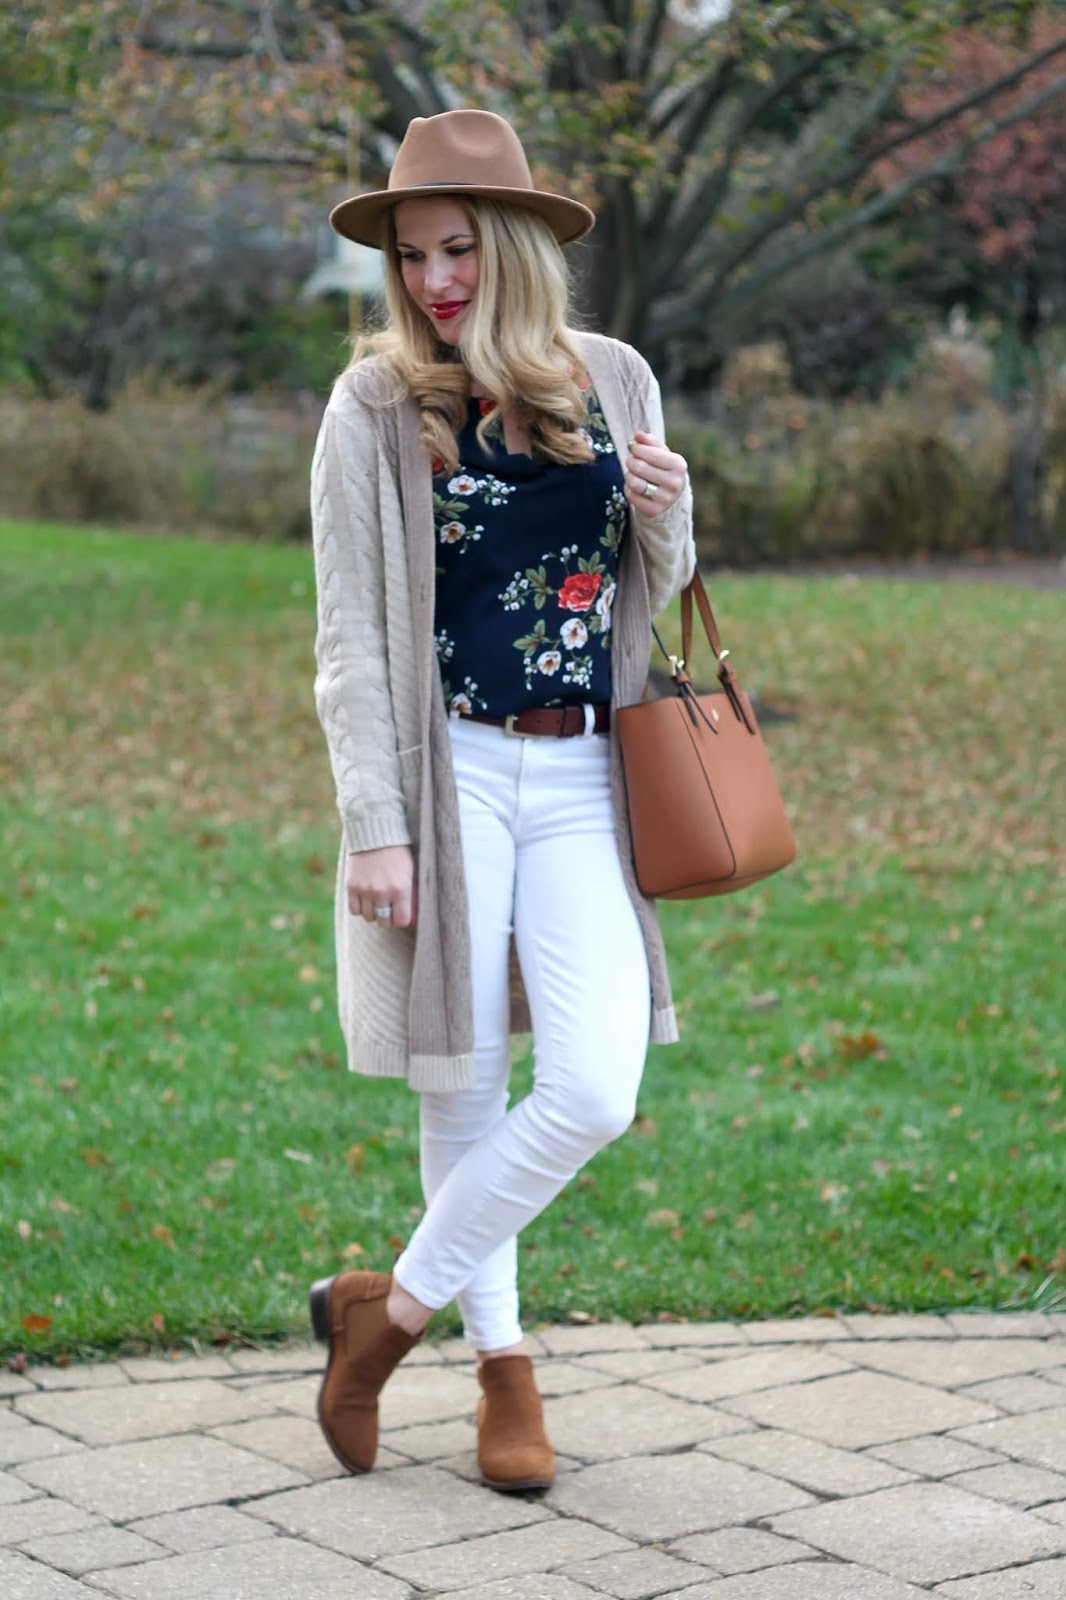 aventura cardigan, camel cable knit cardigan, navy floral blouse, white jeans, cognac booties, Tory Burch tote, camel fedora